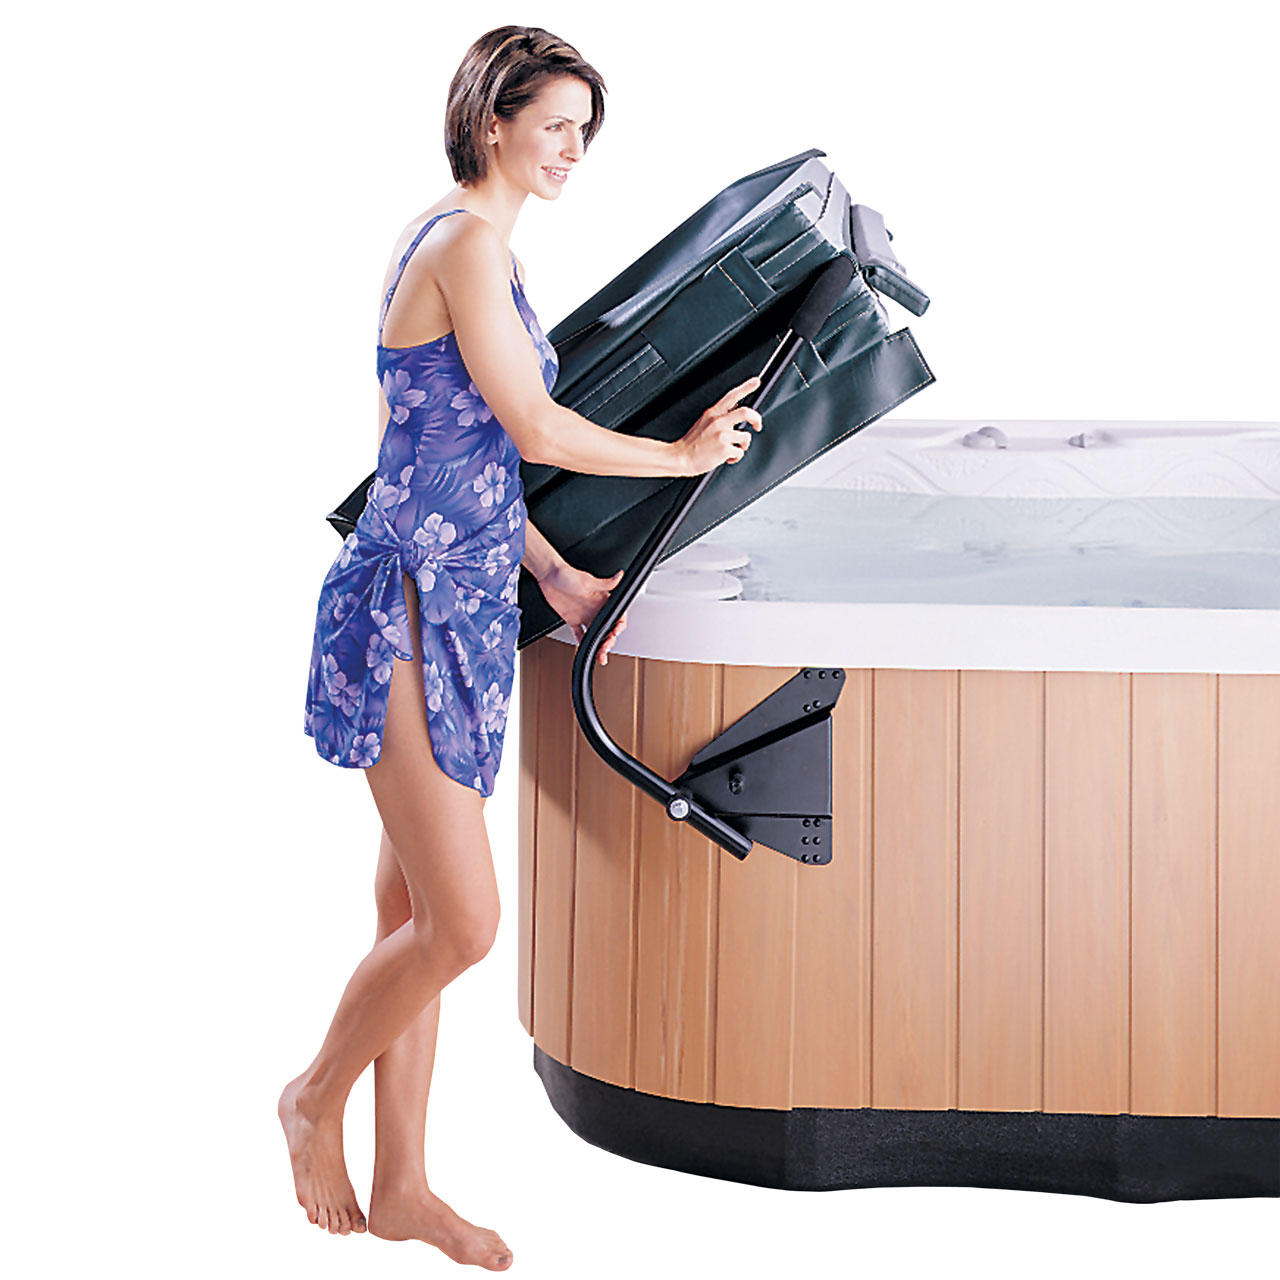 CoverMate Spa Cover Lift